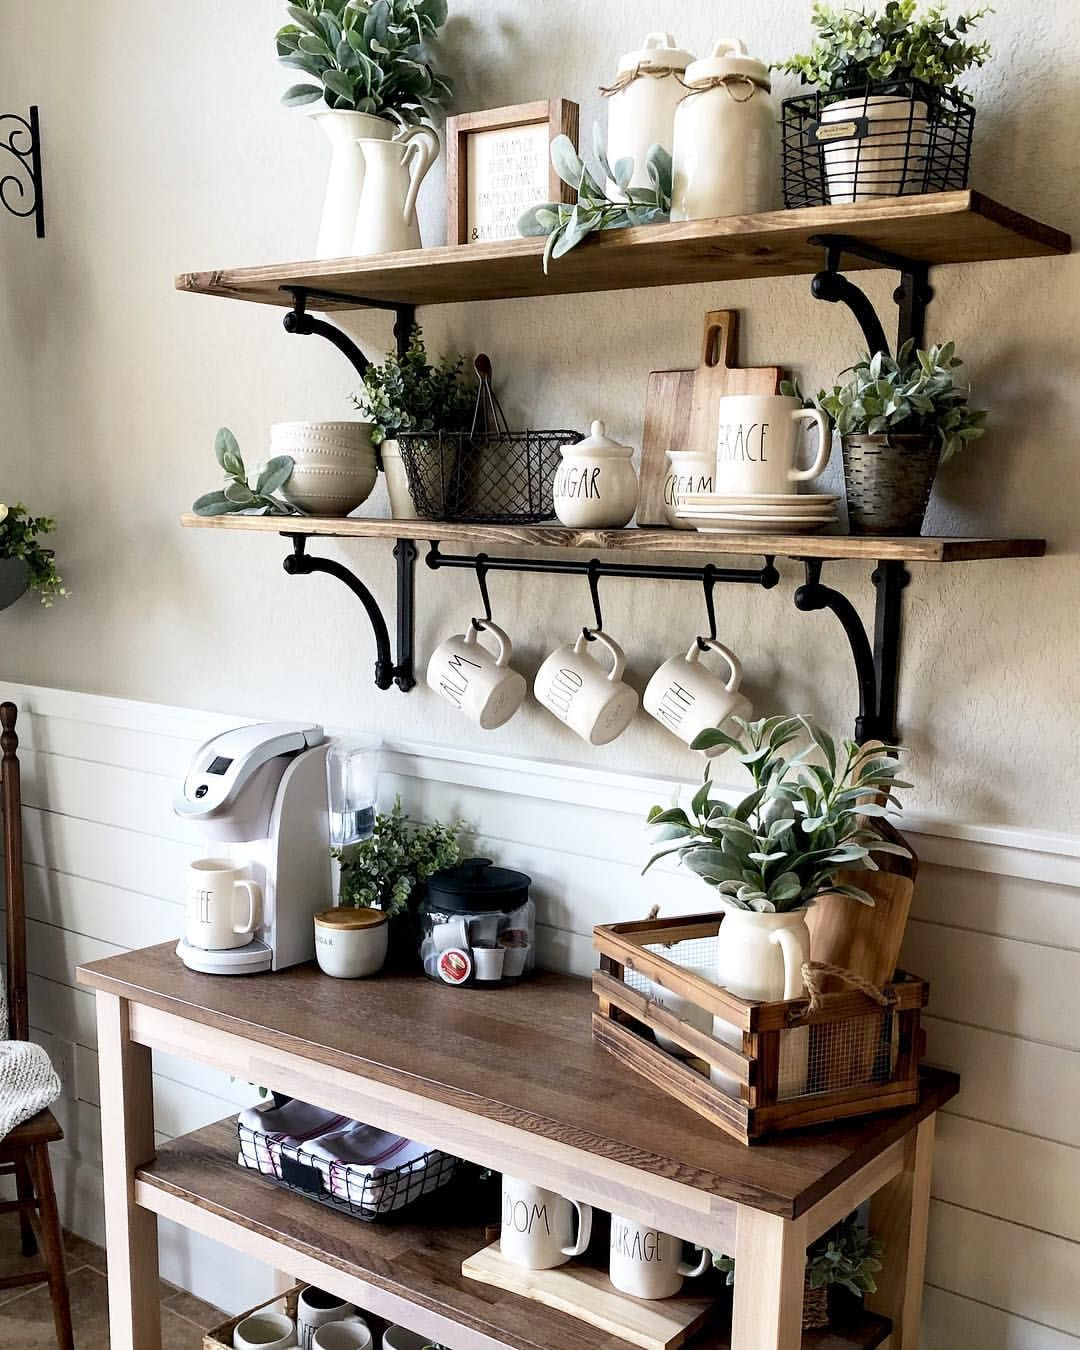 Home Coffee Bar Design Ideas: Farmhouse Coffee Bar With Open Shelving